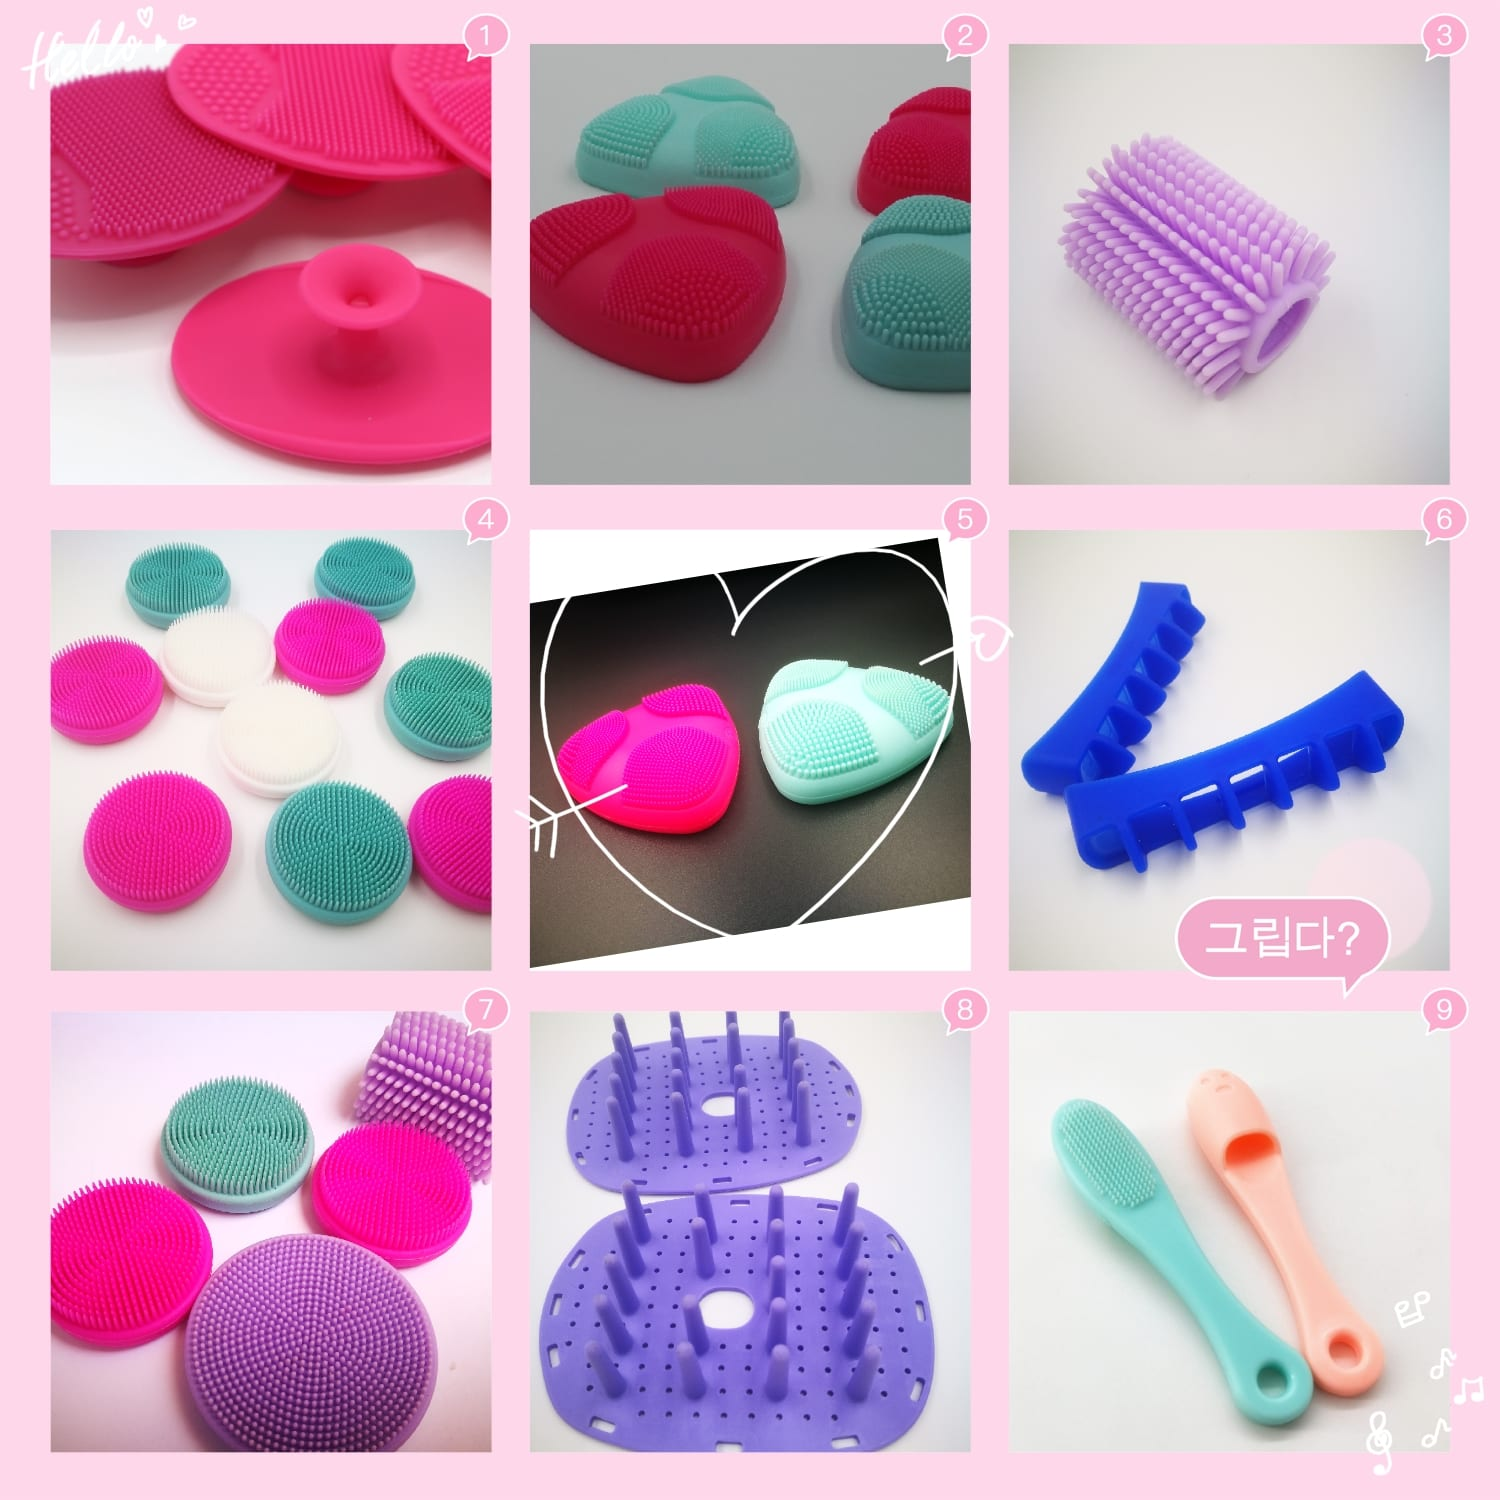 Silicone parts for beauty care products 1